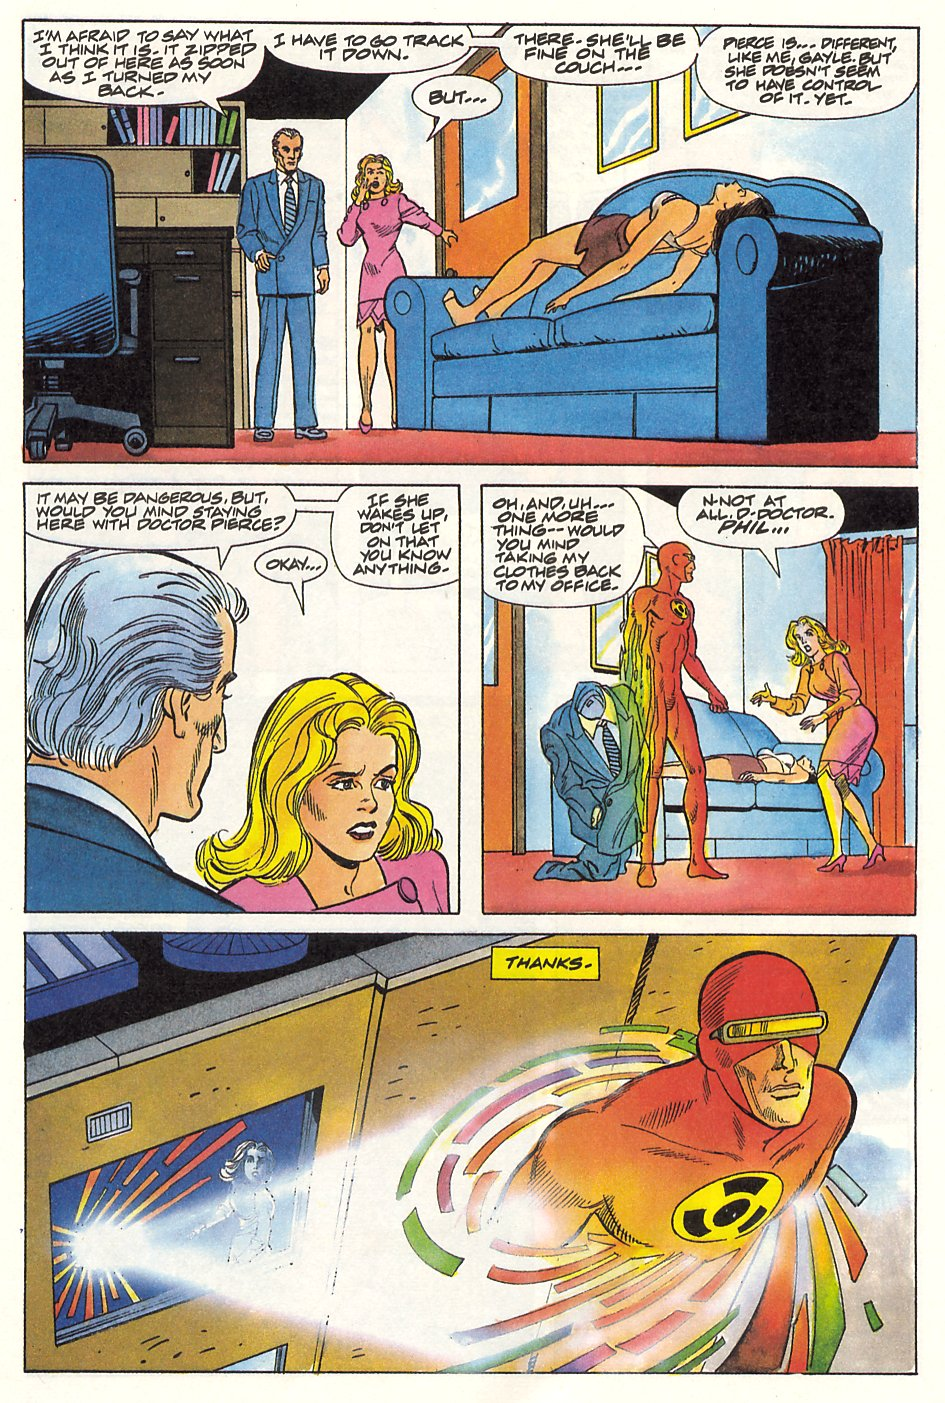 Read online Solar, Man of the Atom comic -  Issue #9 - 11